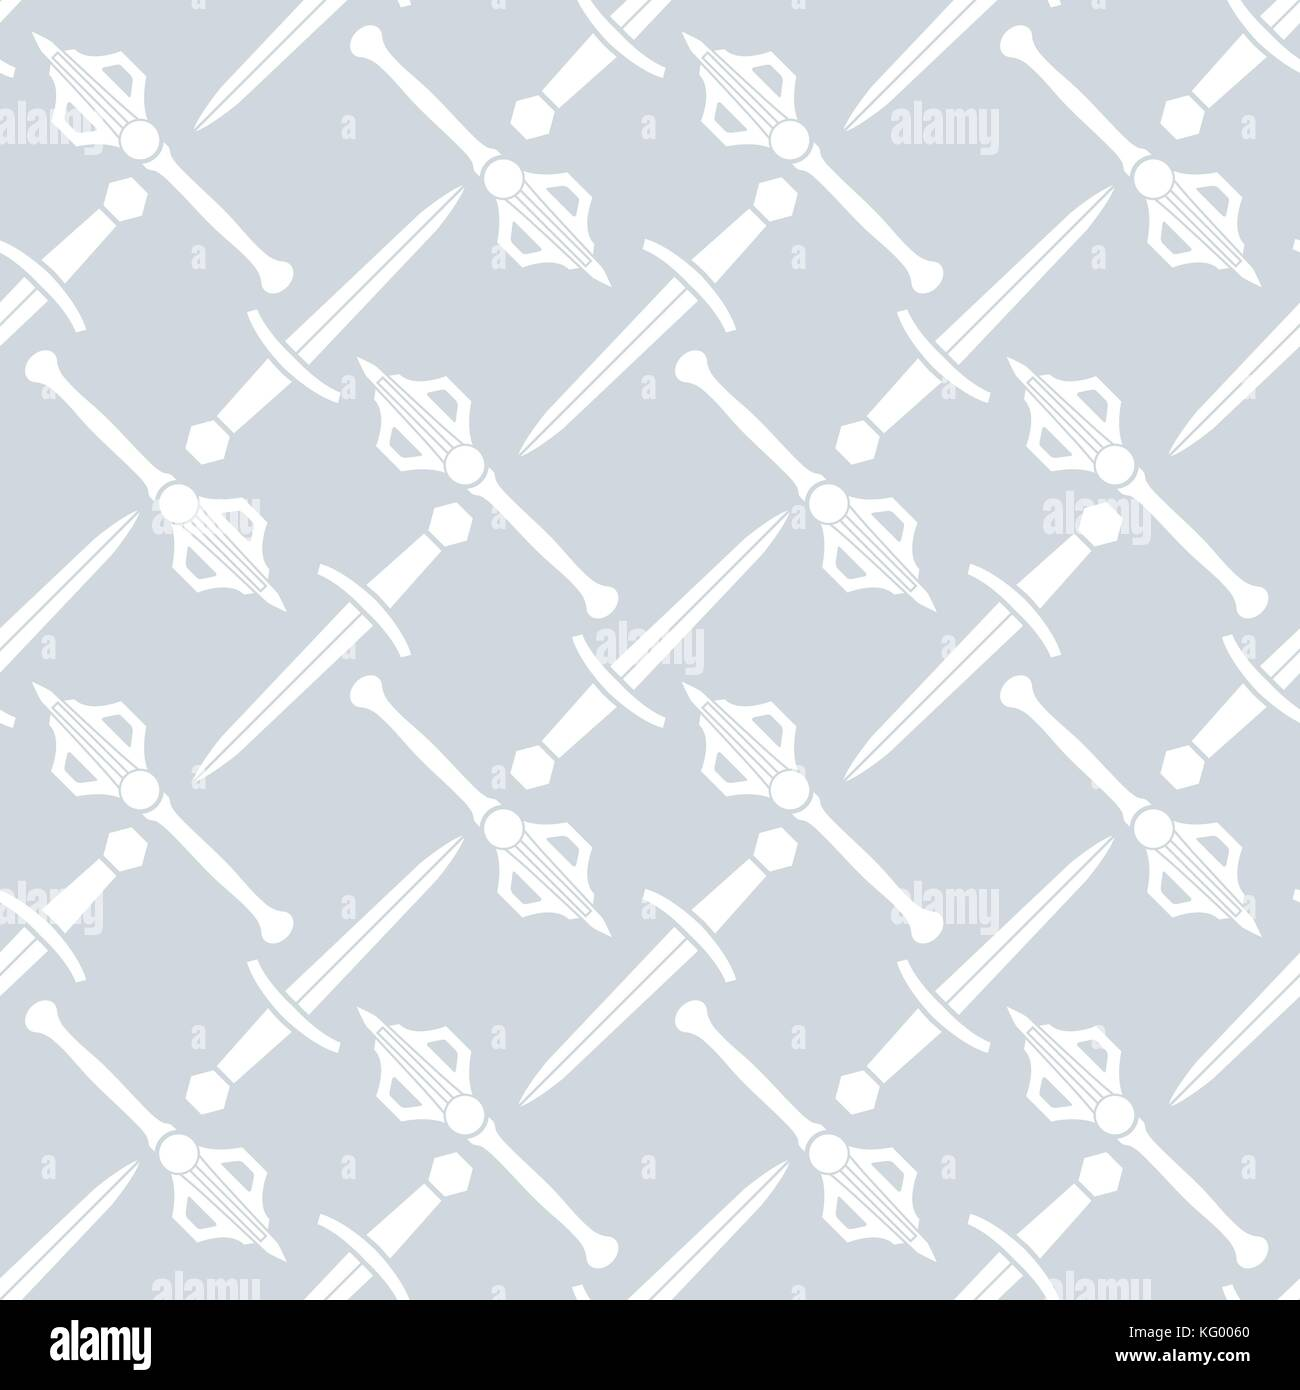 vector white solid design battle hammer axe dagger medieval cold steel arms seamless pattern isolated on silver - Stock Vector